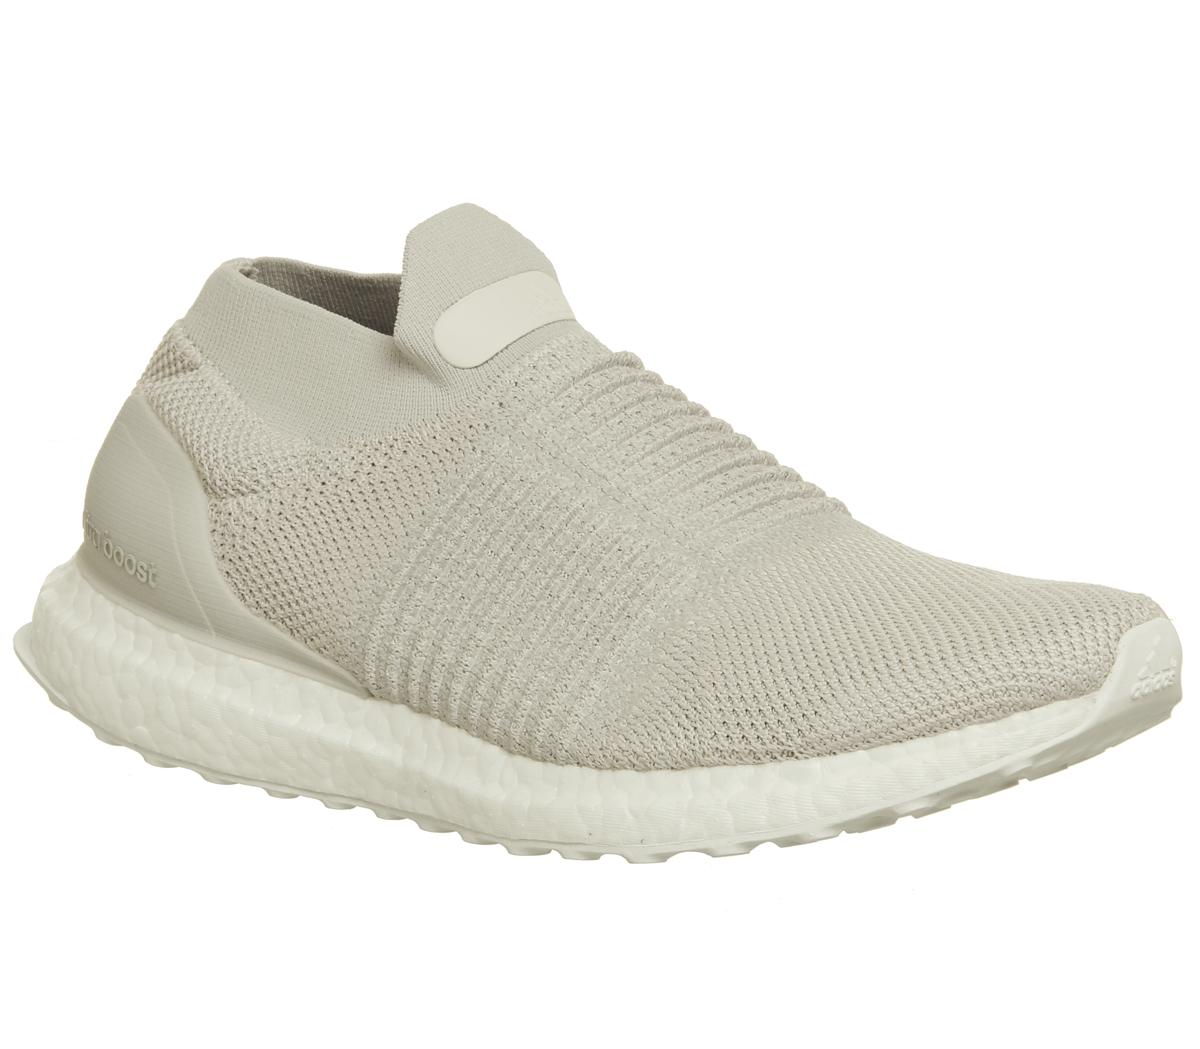 ff17dc79c3dec adidas Ultraboost Ultra Boost Laceless Chalk Pearl - His trainers